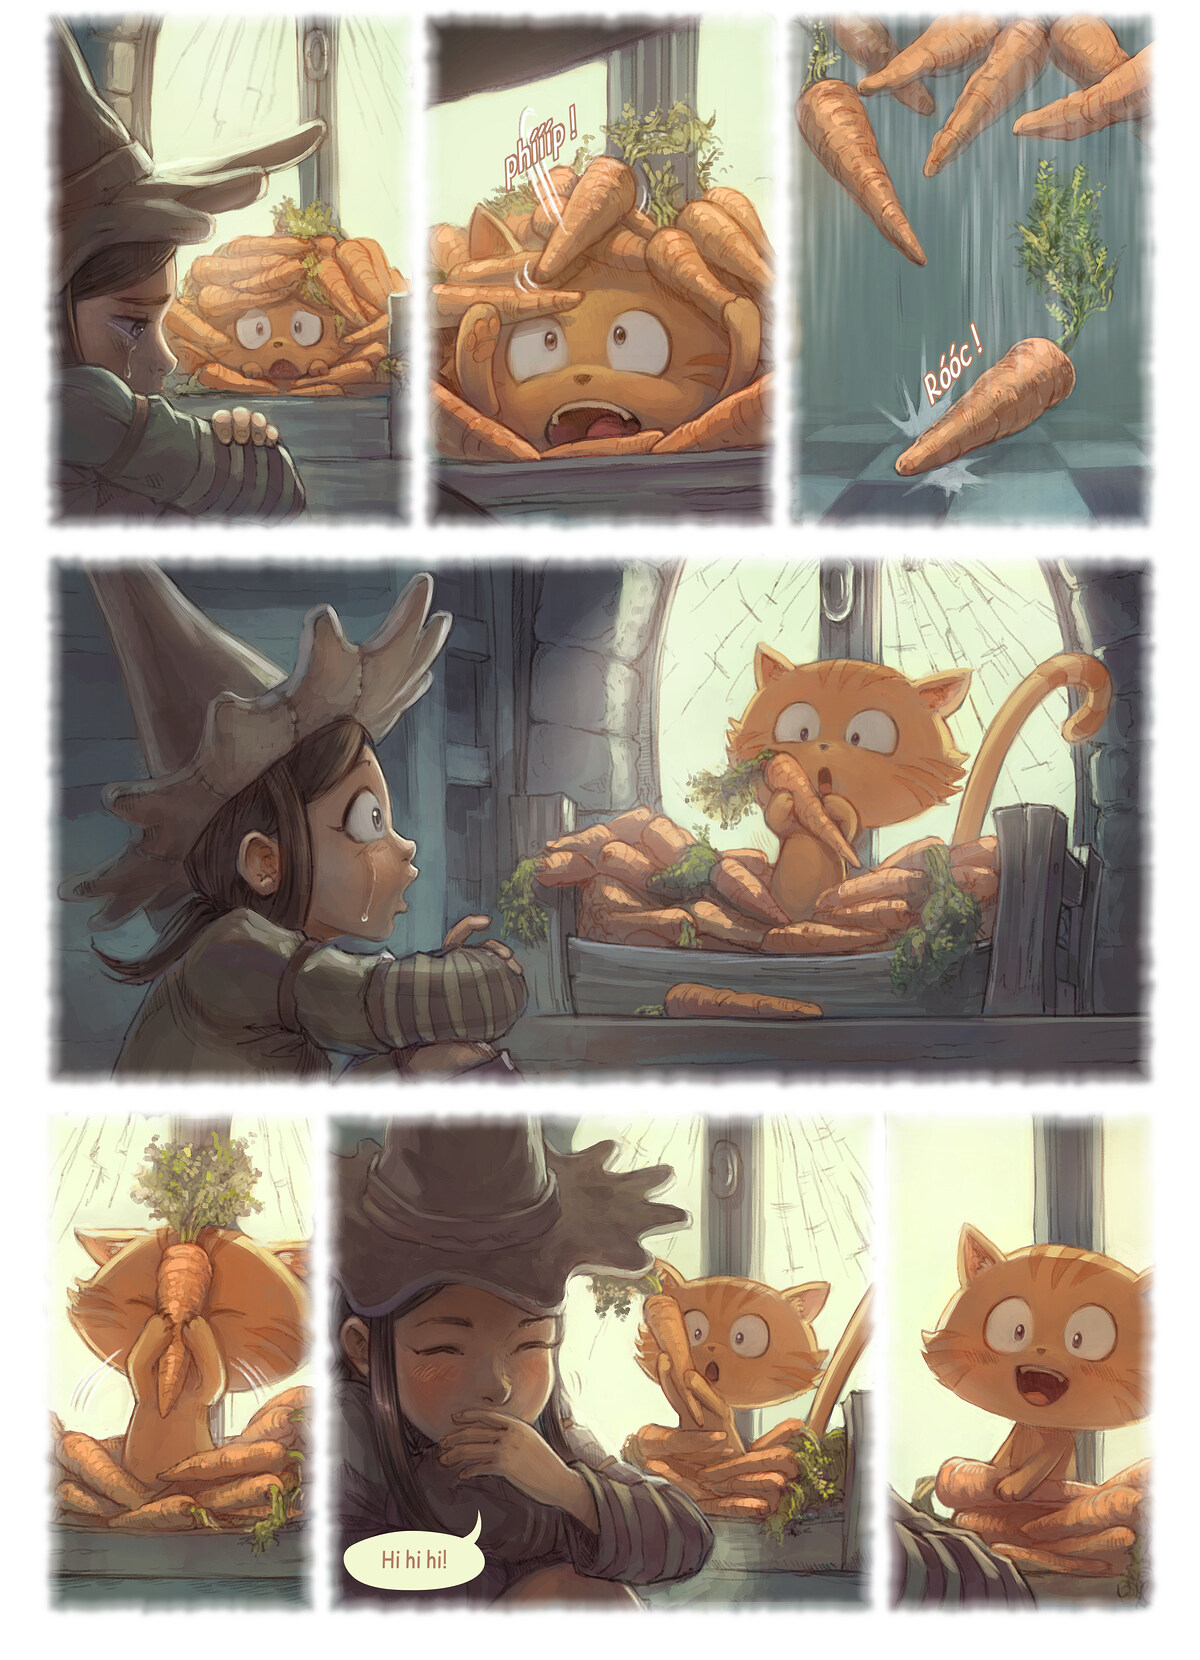 A webcomic page of Pepper&Carrot, Tập 18 [vi], trang 6